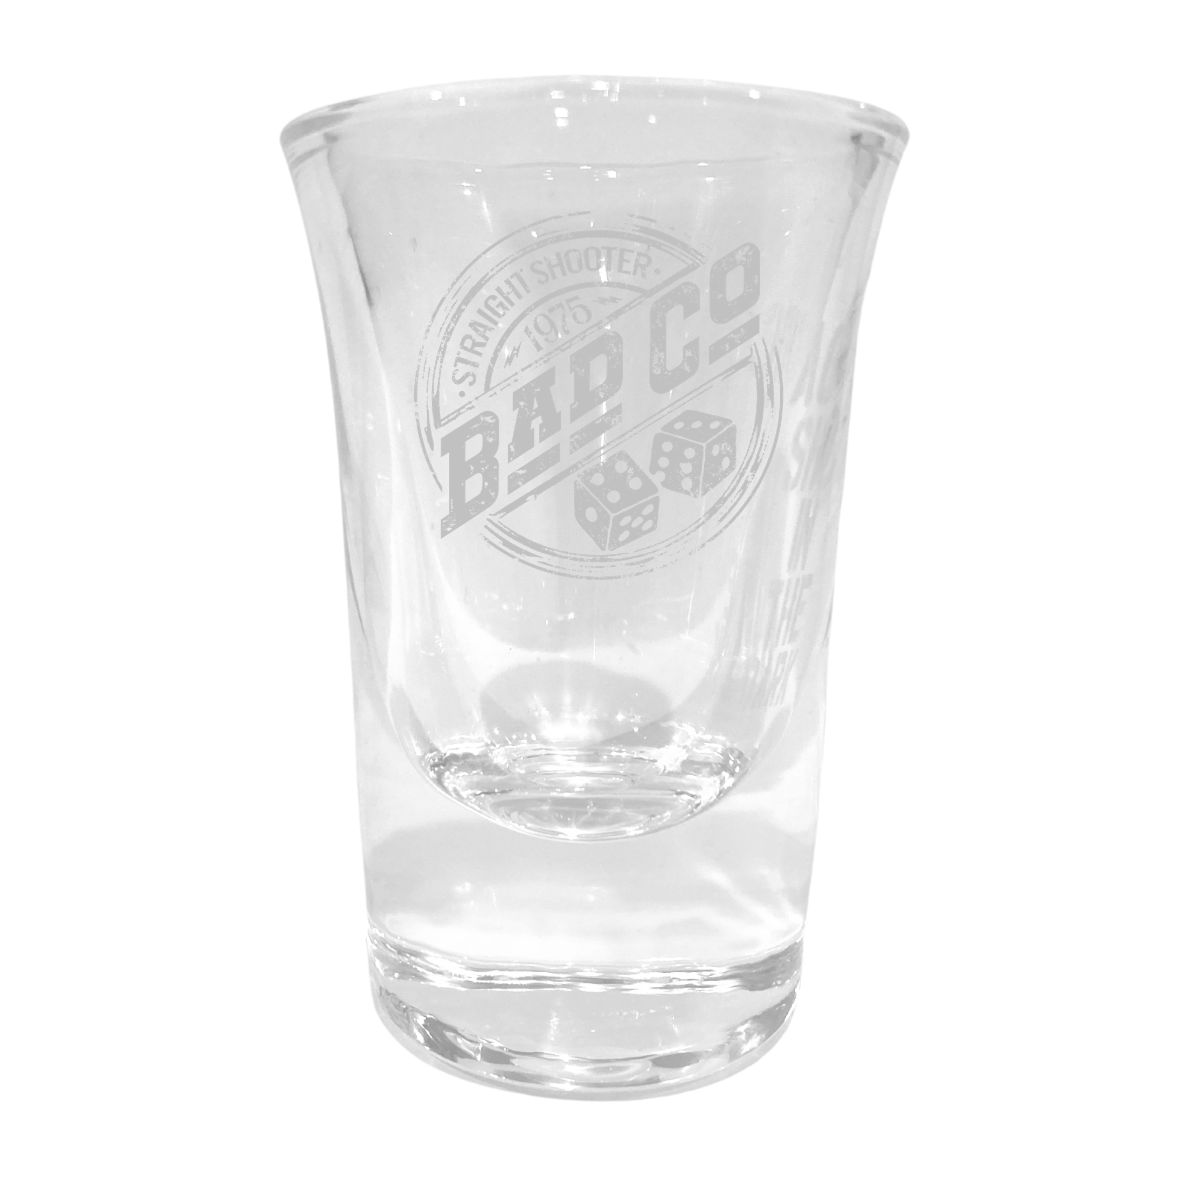 Straight Shooter '75 Laser Engraved Shot Glass